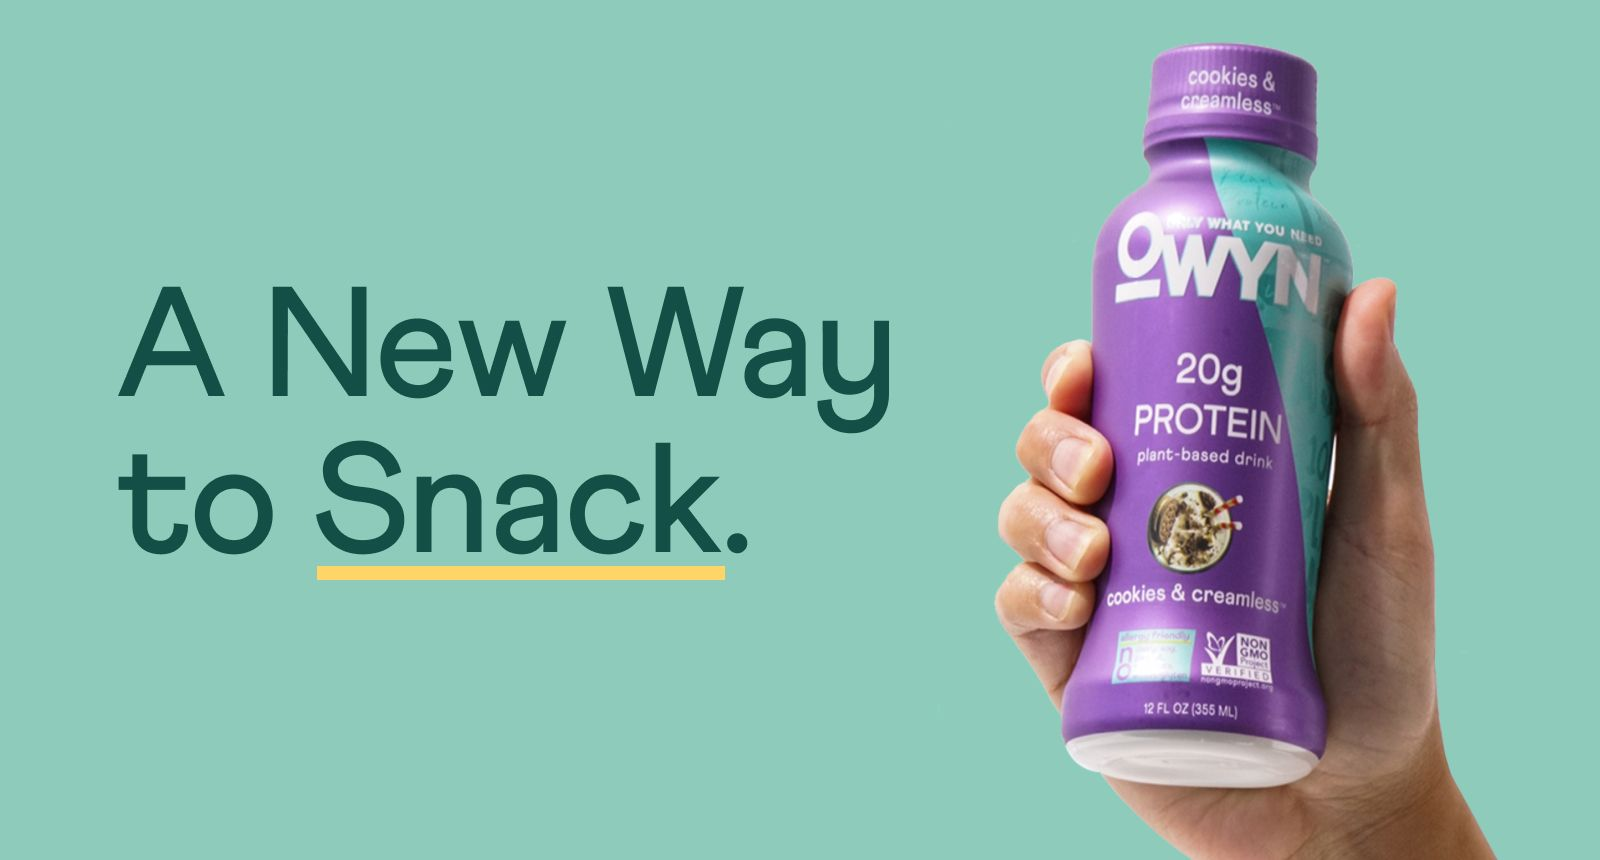 A new way to snack.